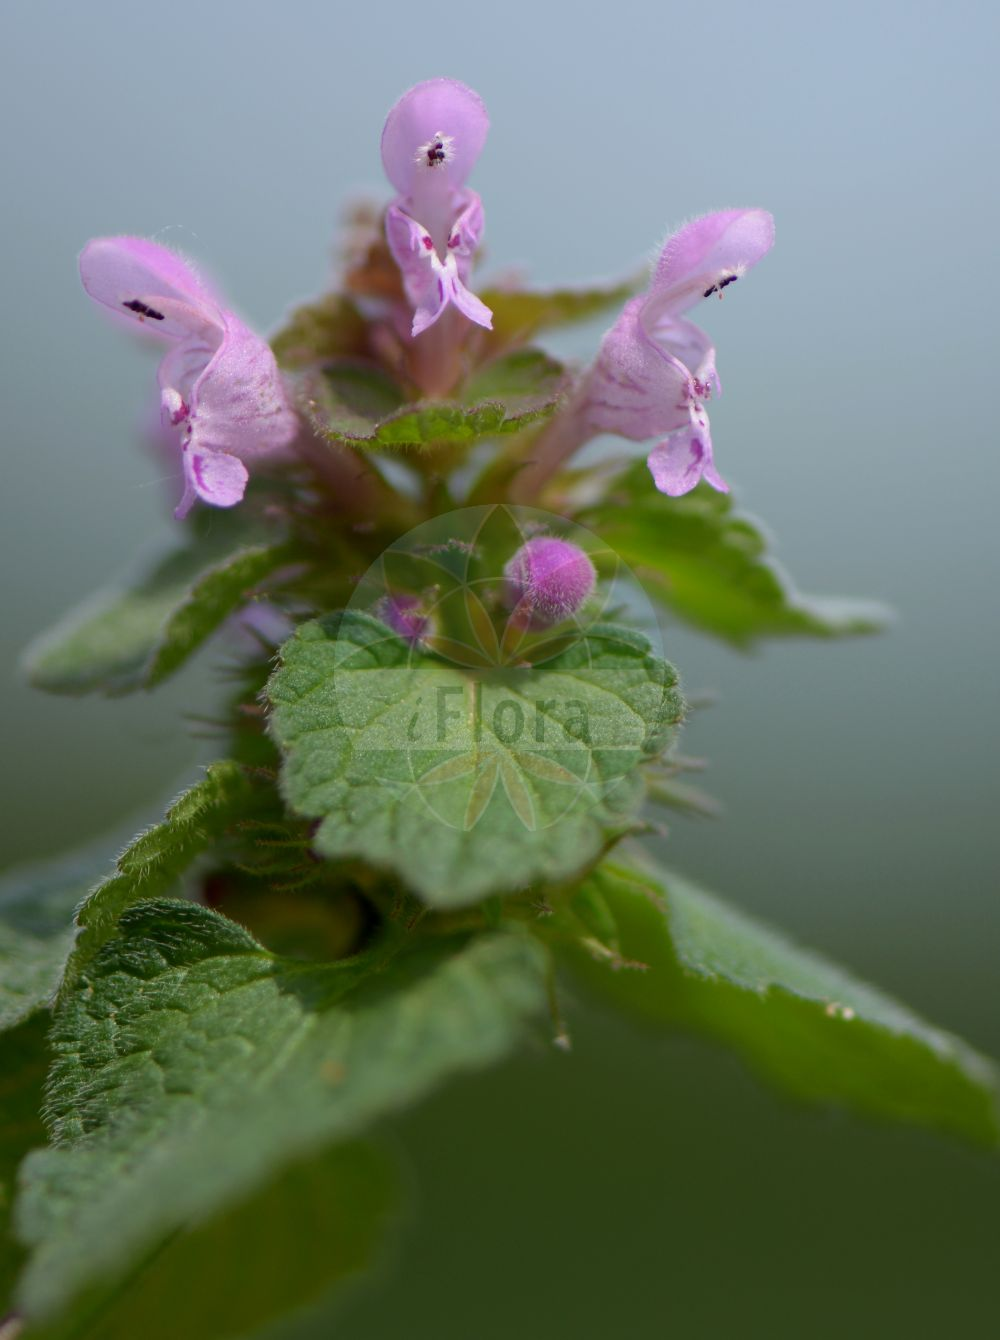 Foto von Lamium confertum (Mittlere Taubnessel - Northern Dead-nettle). Das Bild zeigt Blatt und Bluete. Das Foto wurde in Wetteraukreis, Hessen, Deutschland, Wetterau und Giessener Becken aufgenommen. ---- Photo of Lamium confertum (Mittlere Taubnessel - Northern Dead-nettle).The image is showing leaf and flower.The picture was taken in Wetterau district, Hesse, Germany, Wetterau and Giessener Becken.(Lamium confertum,Mittlere Taubnessel,Northern Dead-nettle,Lamium coutinhoi,Lamium intermedium,Intermediate Deadnettle,Lamium,Taubnessel,Deadnettle,Lamiaceae,Lippenbluetengewaechse;Lippenbluetler,Nettle family,Blatt,Bluete,leaf,flower)